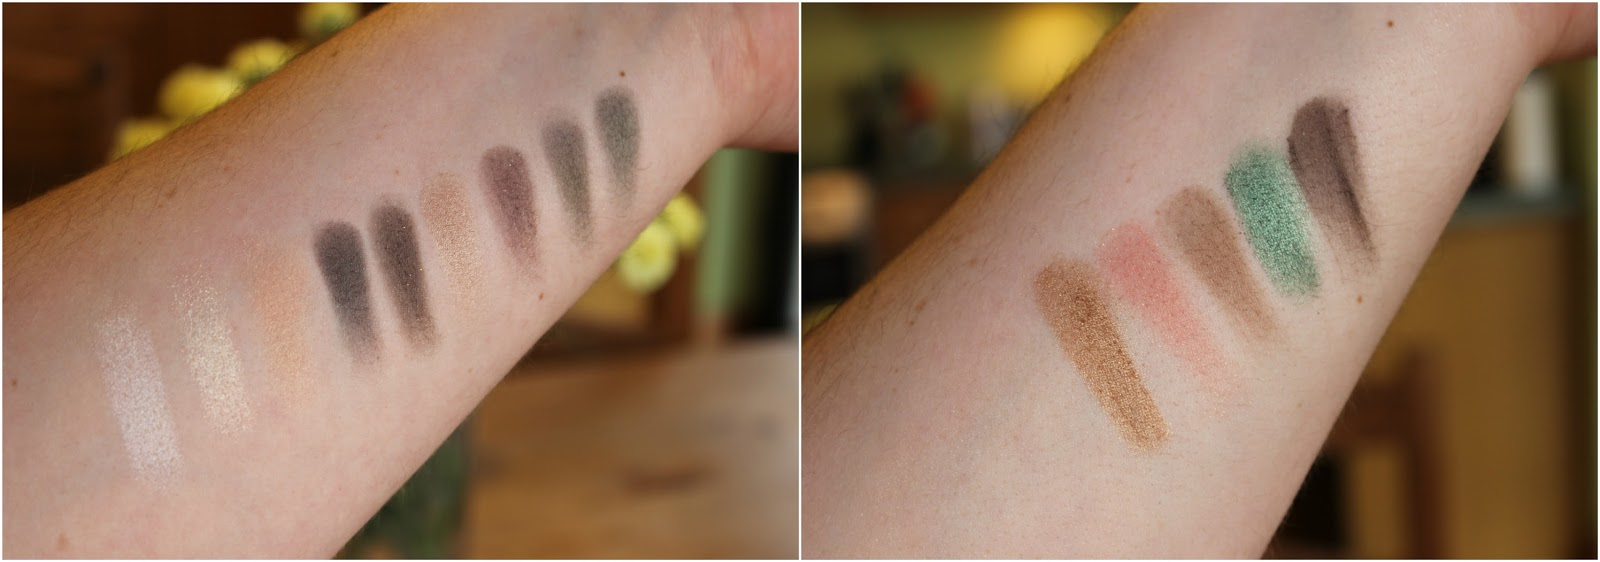 NYX 'Love In' Palettes Swatches